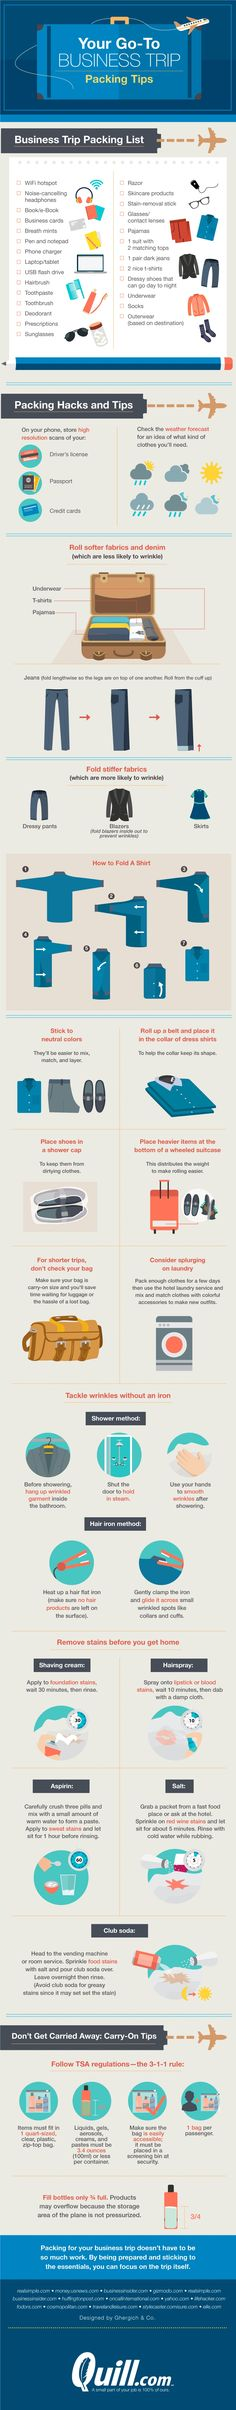 """Business Trip Packing Tips : """"Minimalism"""" is probably the best theme for business travel today. Raised baggage fees, smaller seat space, and increasing hub congestion mean you have to be more efficient than ever with your planning. Business Trip Packing, Packing List For Travel, Business Travel, Travel Guide, Business Men, Travel Hacks, Business Ideas, Travel Ideas, Business Opportunities"""